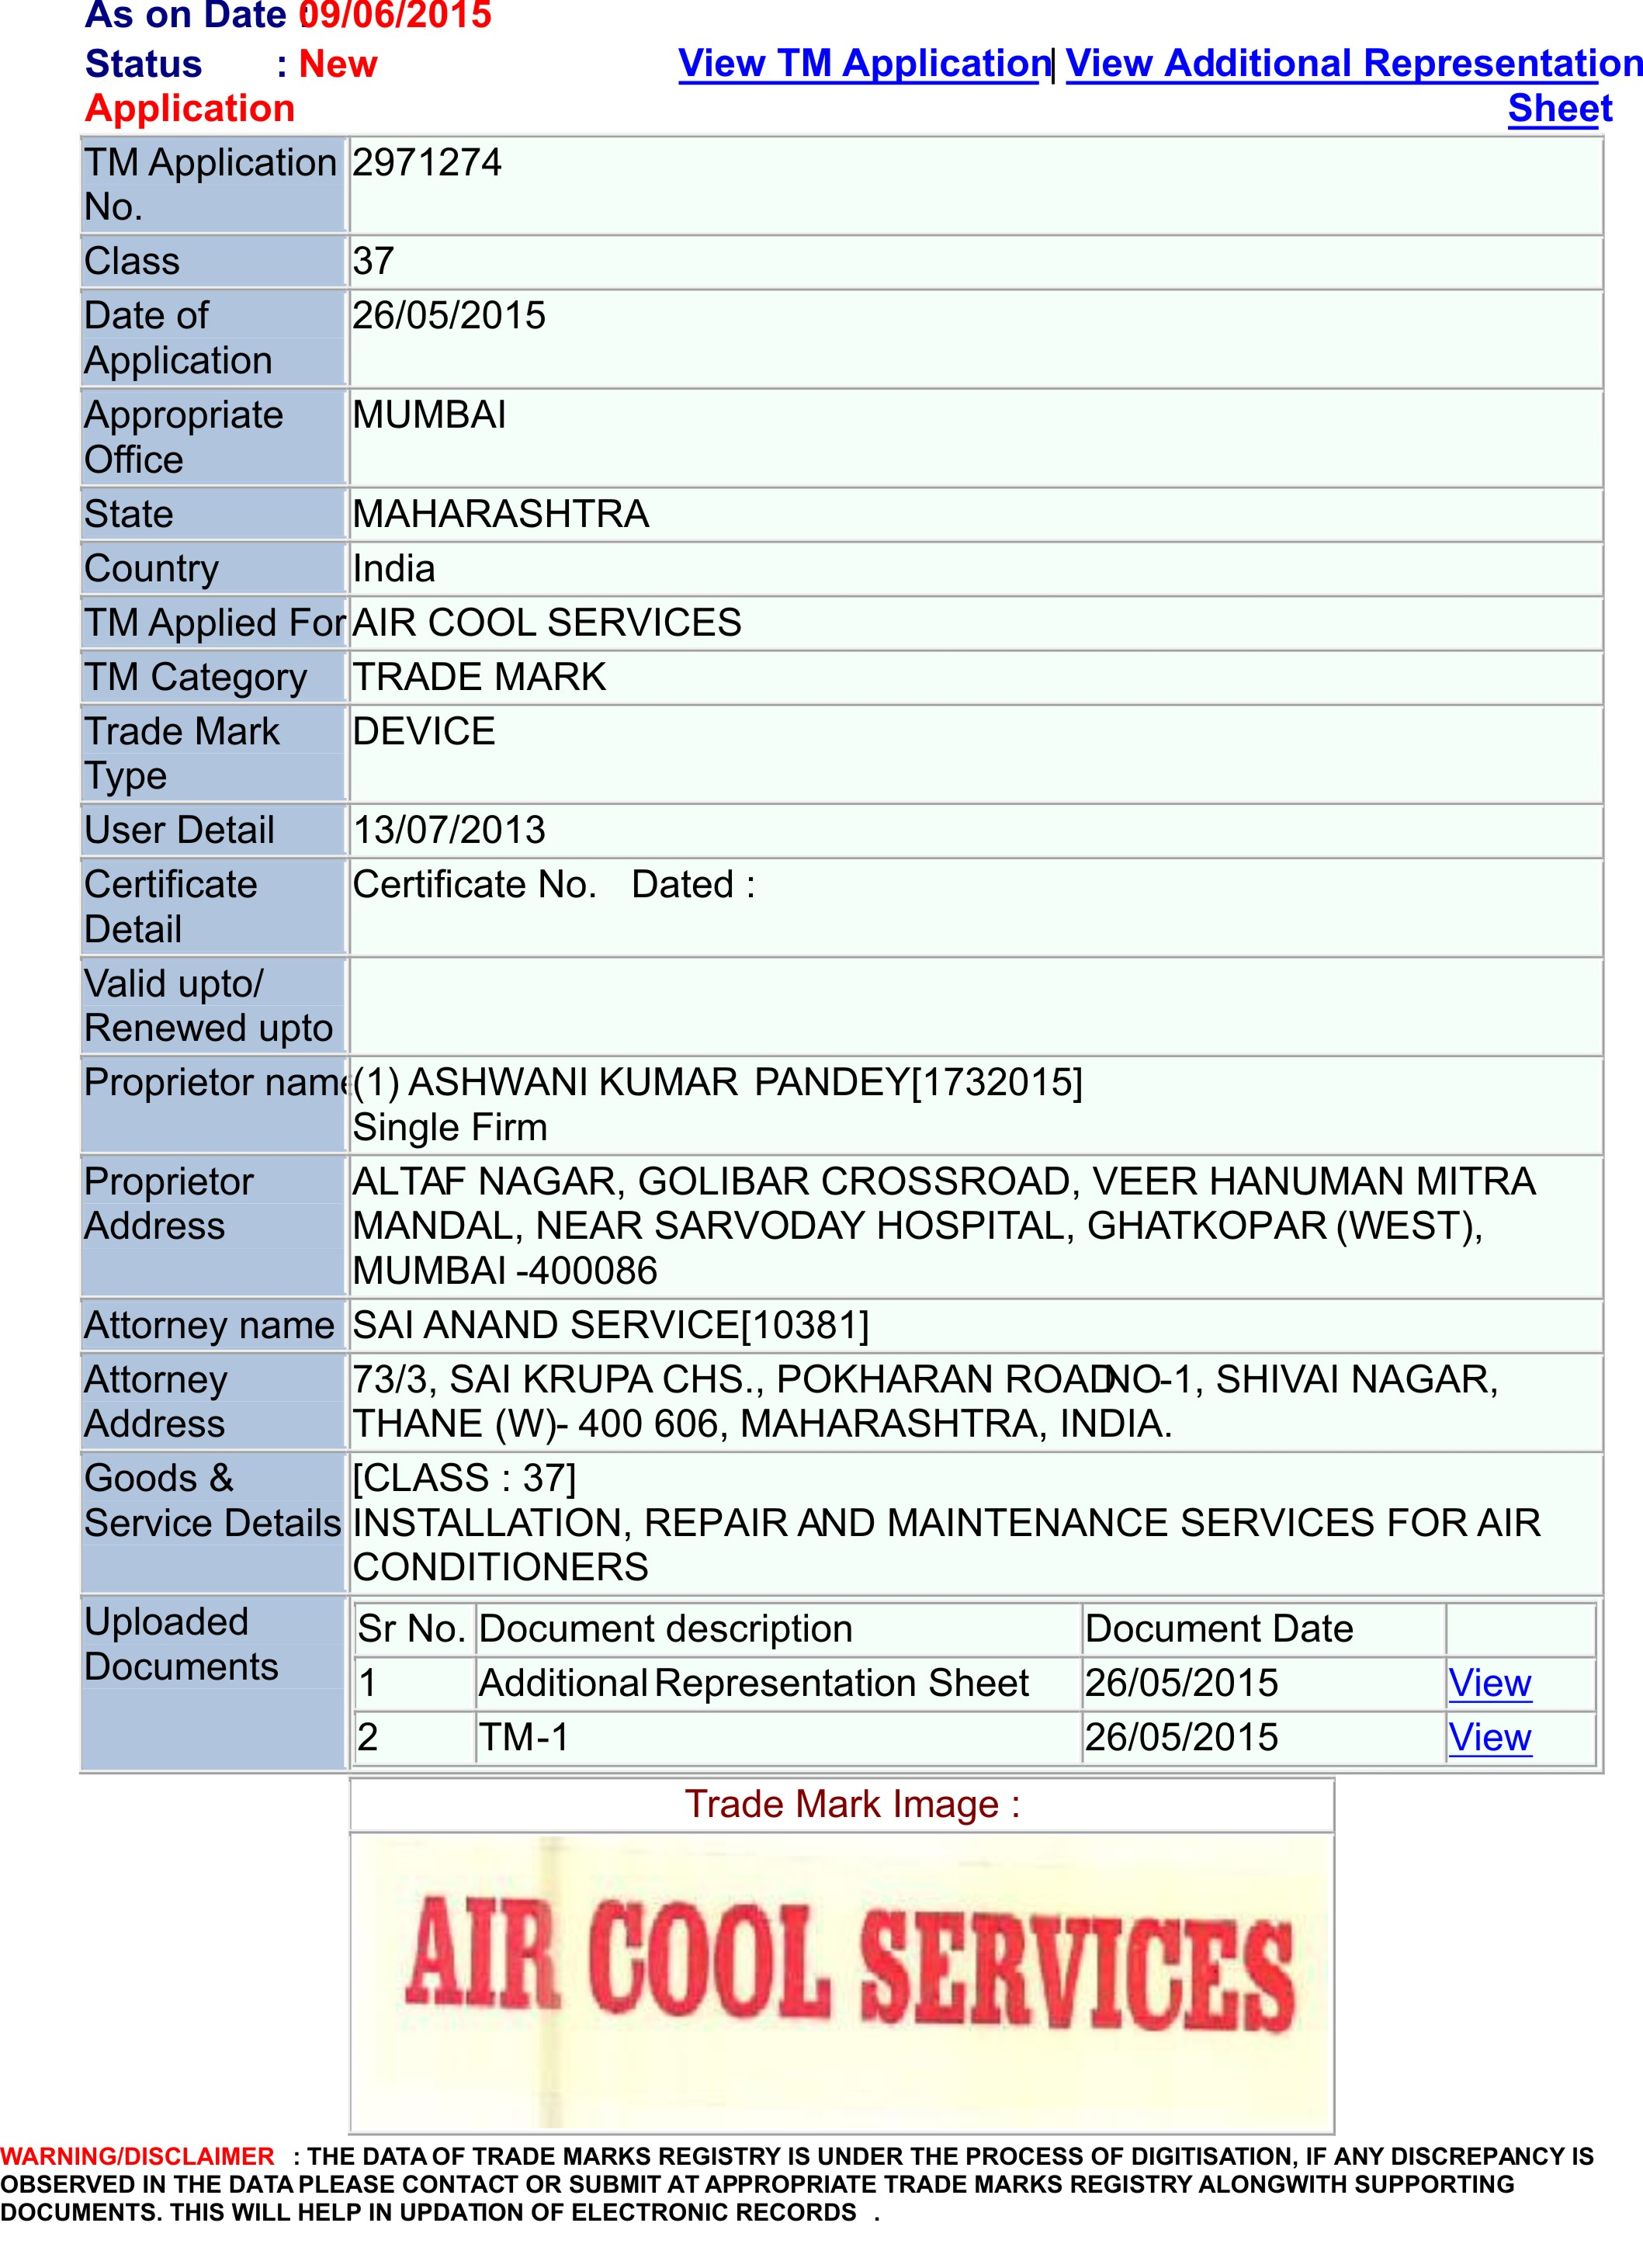 ac repair ac services ac maintenance ac maintenance contract air conditioner amc mumbai service air conditionerac - Maintenance Service Contract Sample